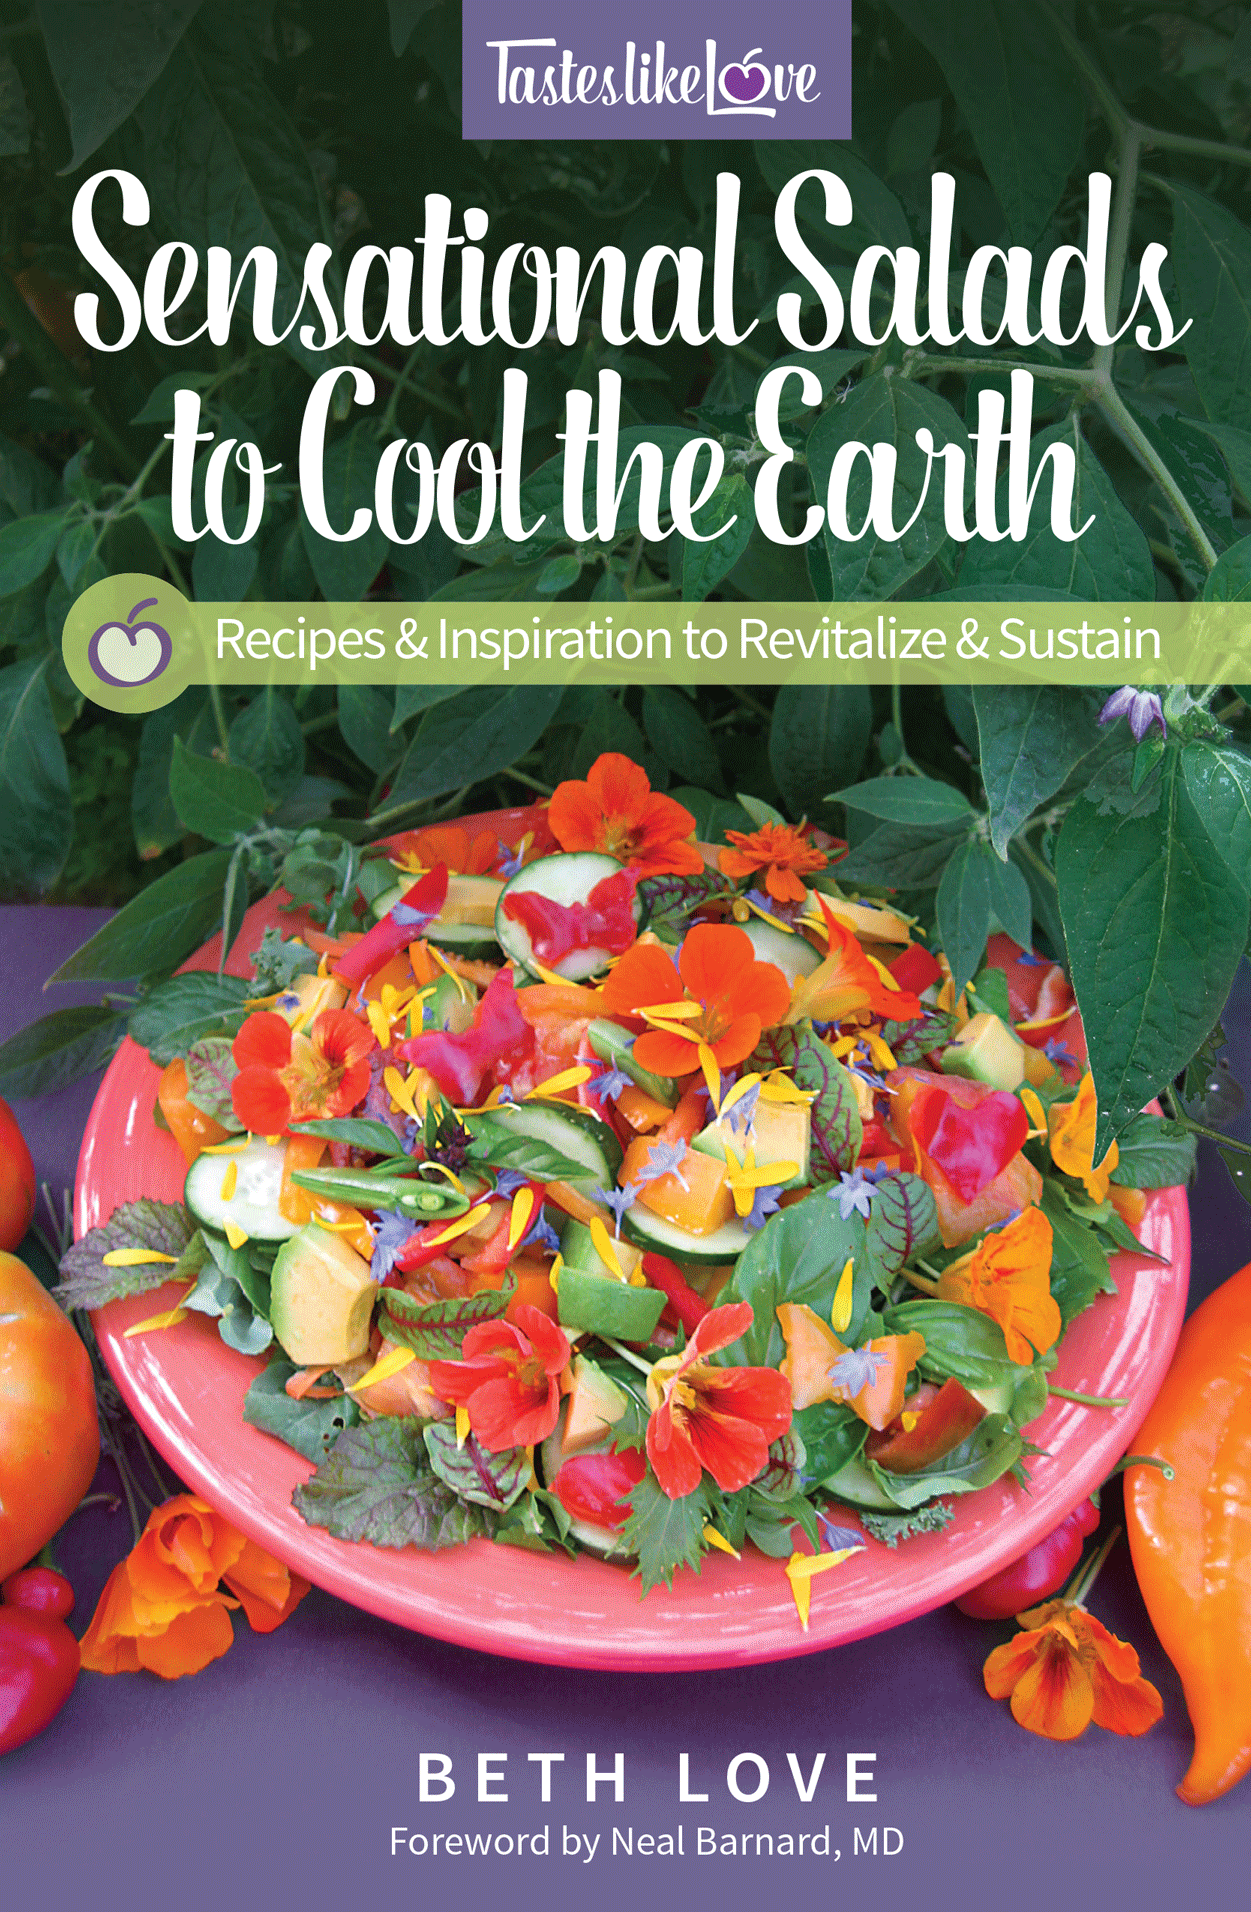 Cover of book: Sensational Salads to Cool the Earth